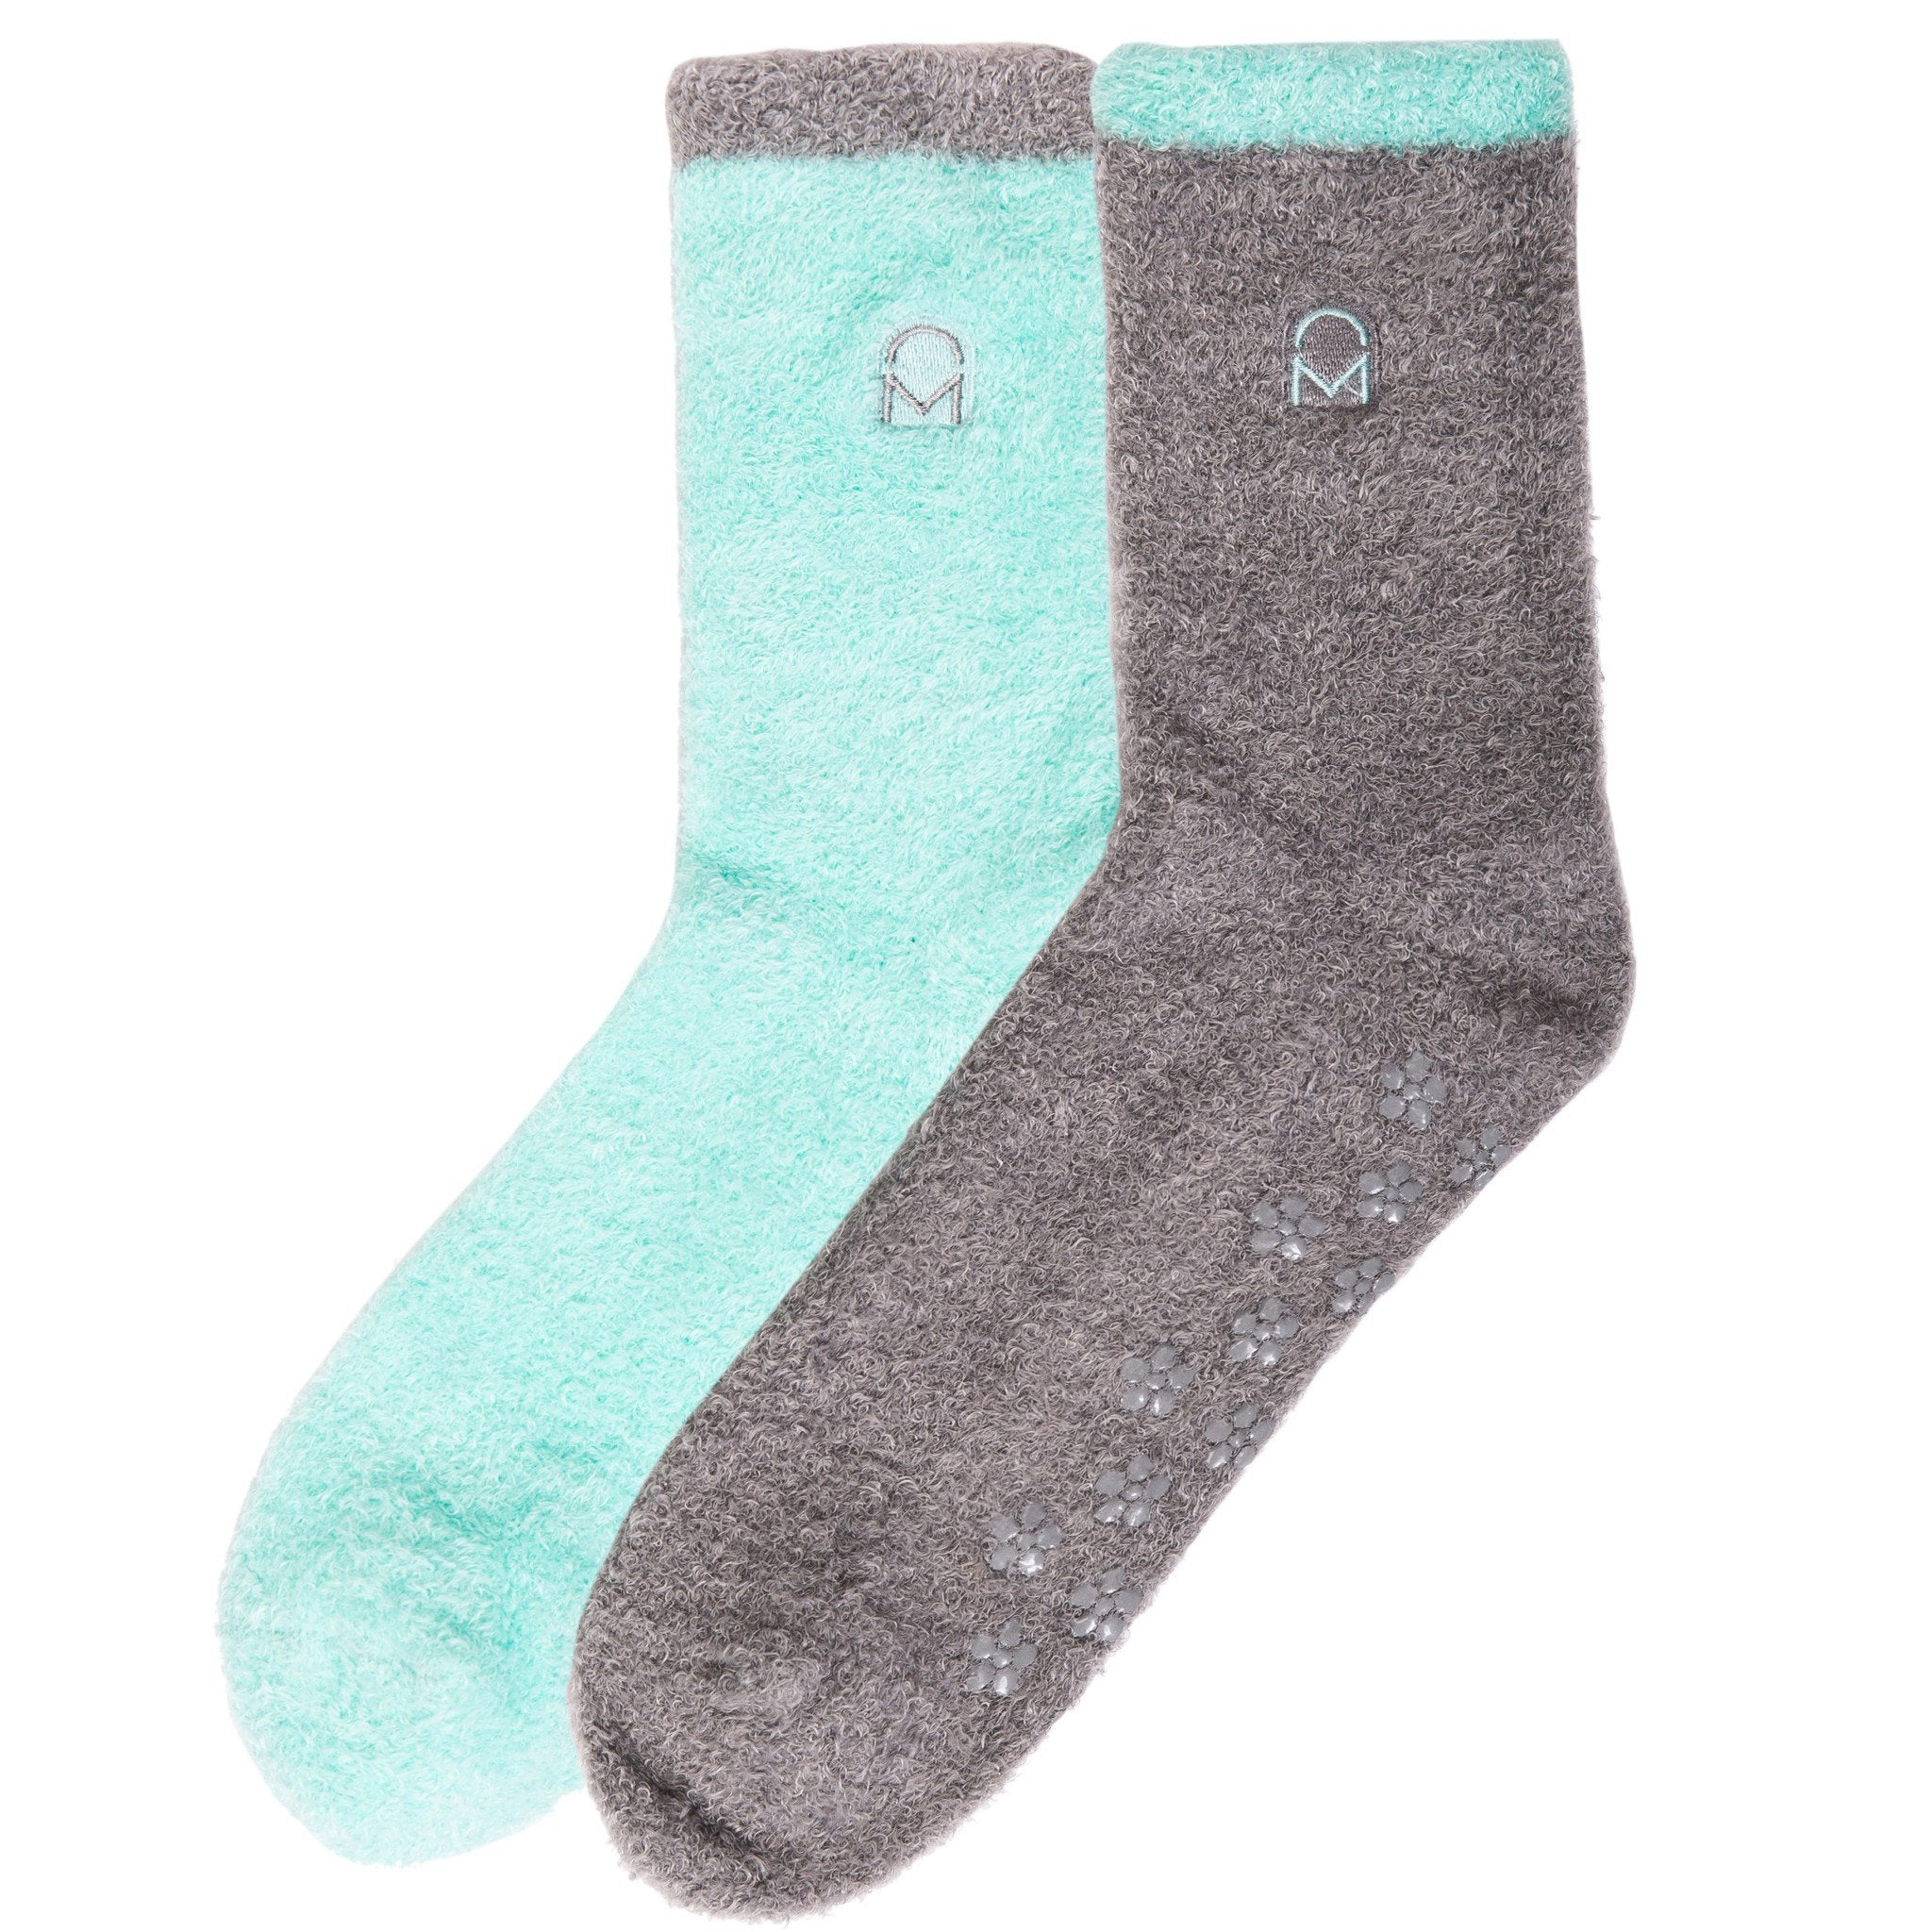 Box Packaged Women's Soft Anti-Skid Winter Feather Socks - 2-Pairs - Set C4